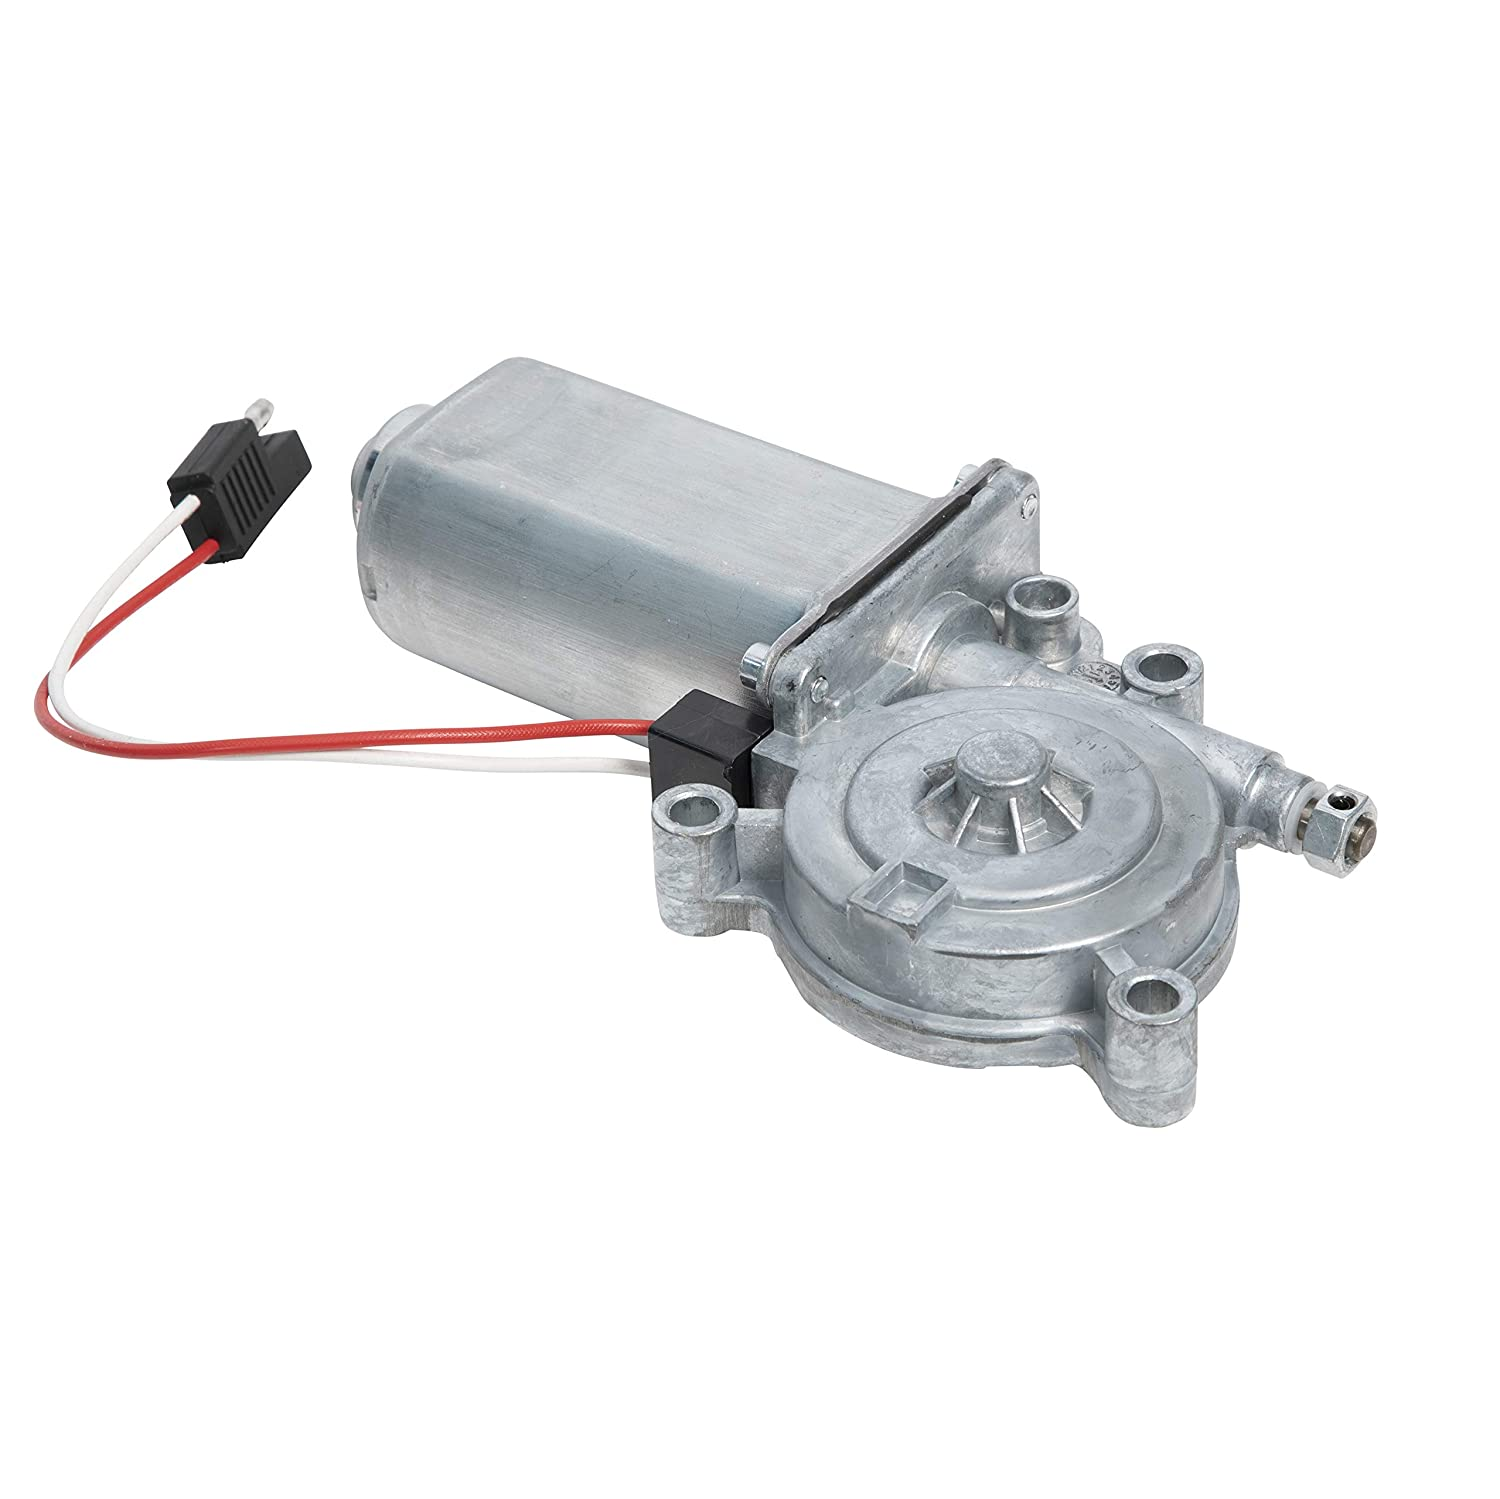 Solera 373566 Replacement Motor with Single 2-Way Connector Power Awnings